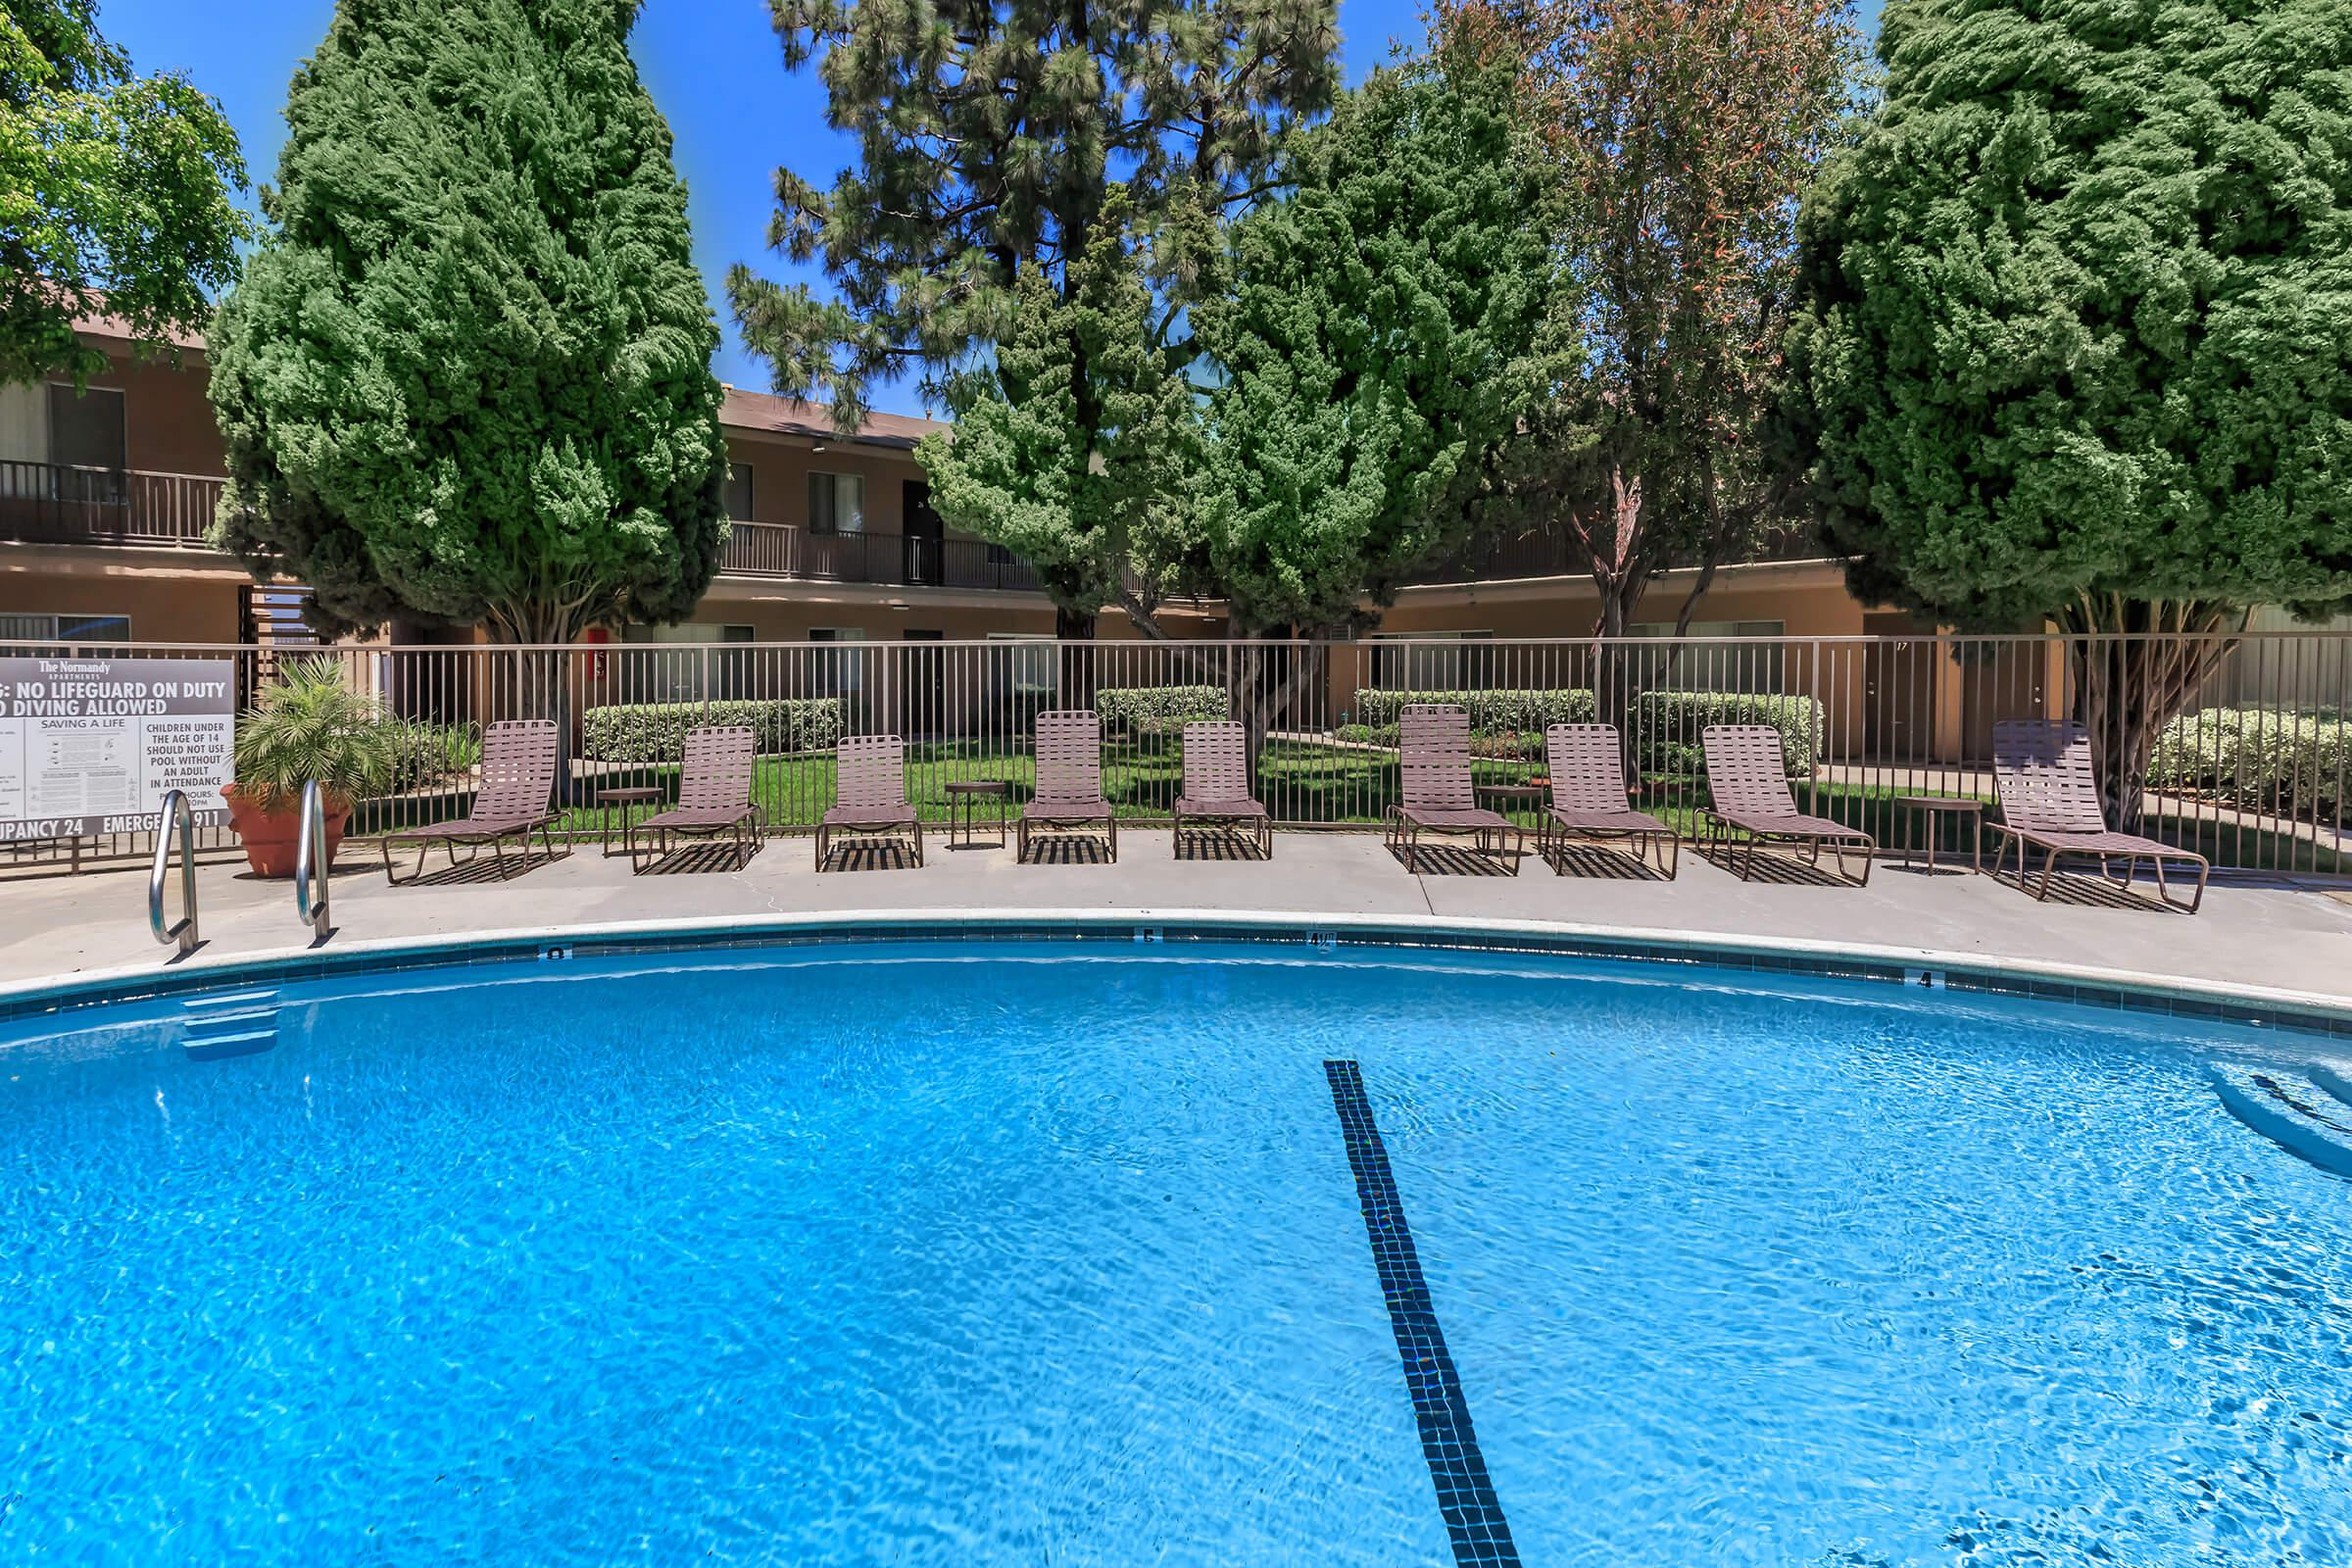 The Normandy Apartment Homes community pool